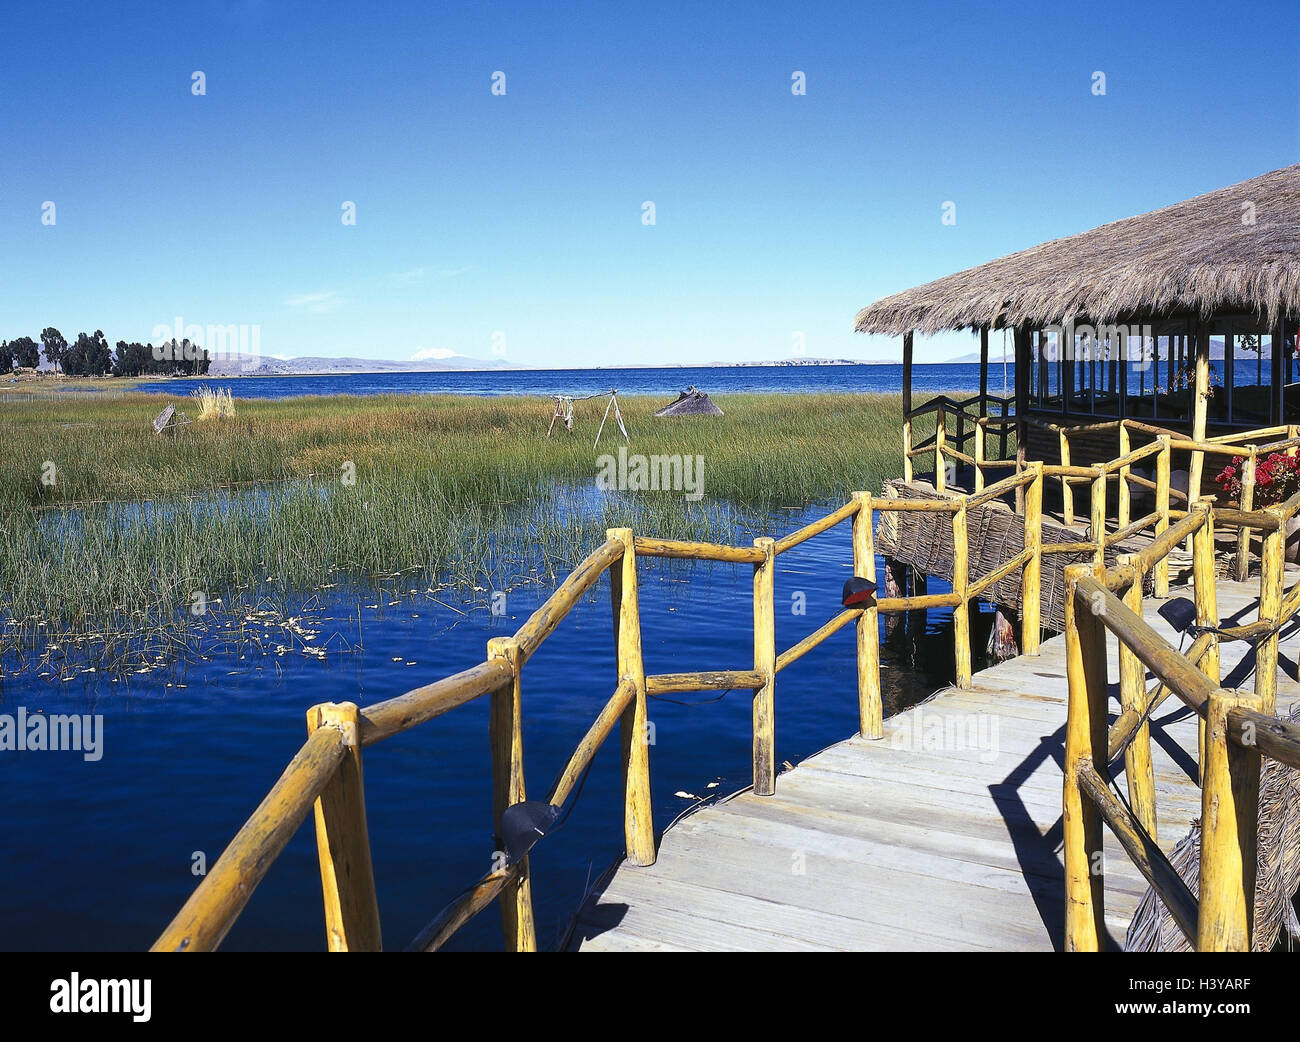 Bolivia, Titicacasee, hut, bridge, water, outside, South America, lake, water, construction method, traditionally, - Stock Image